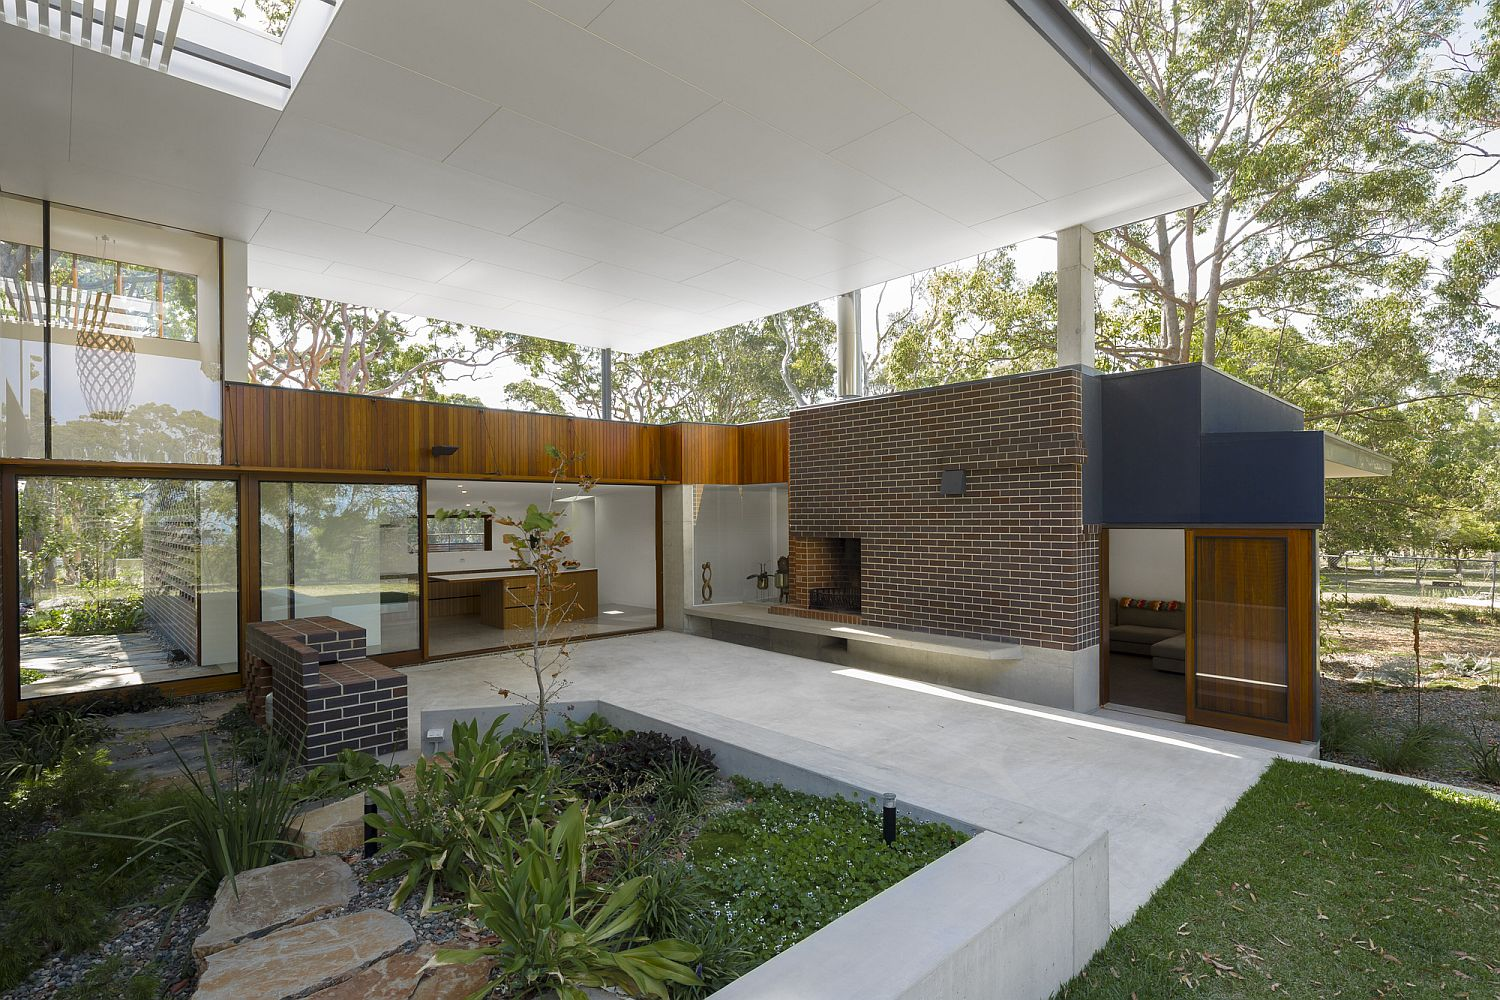 Covered exterior spaces flow into the natural landscape outside